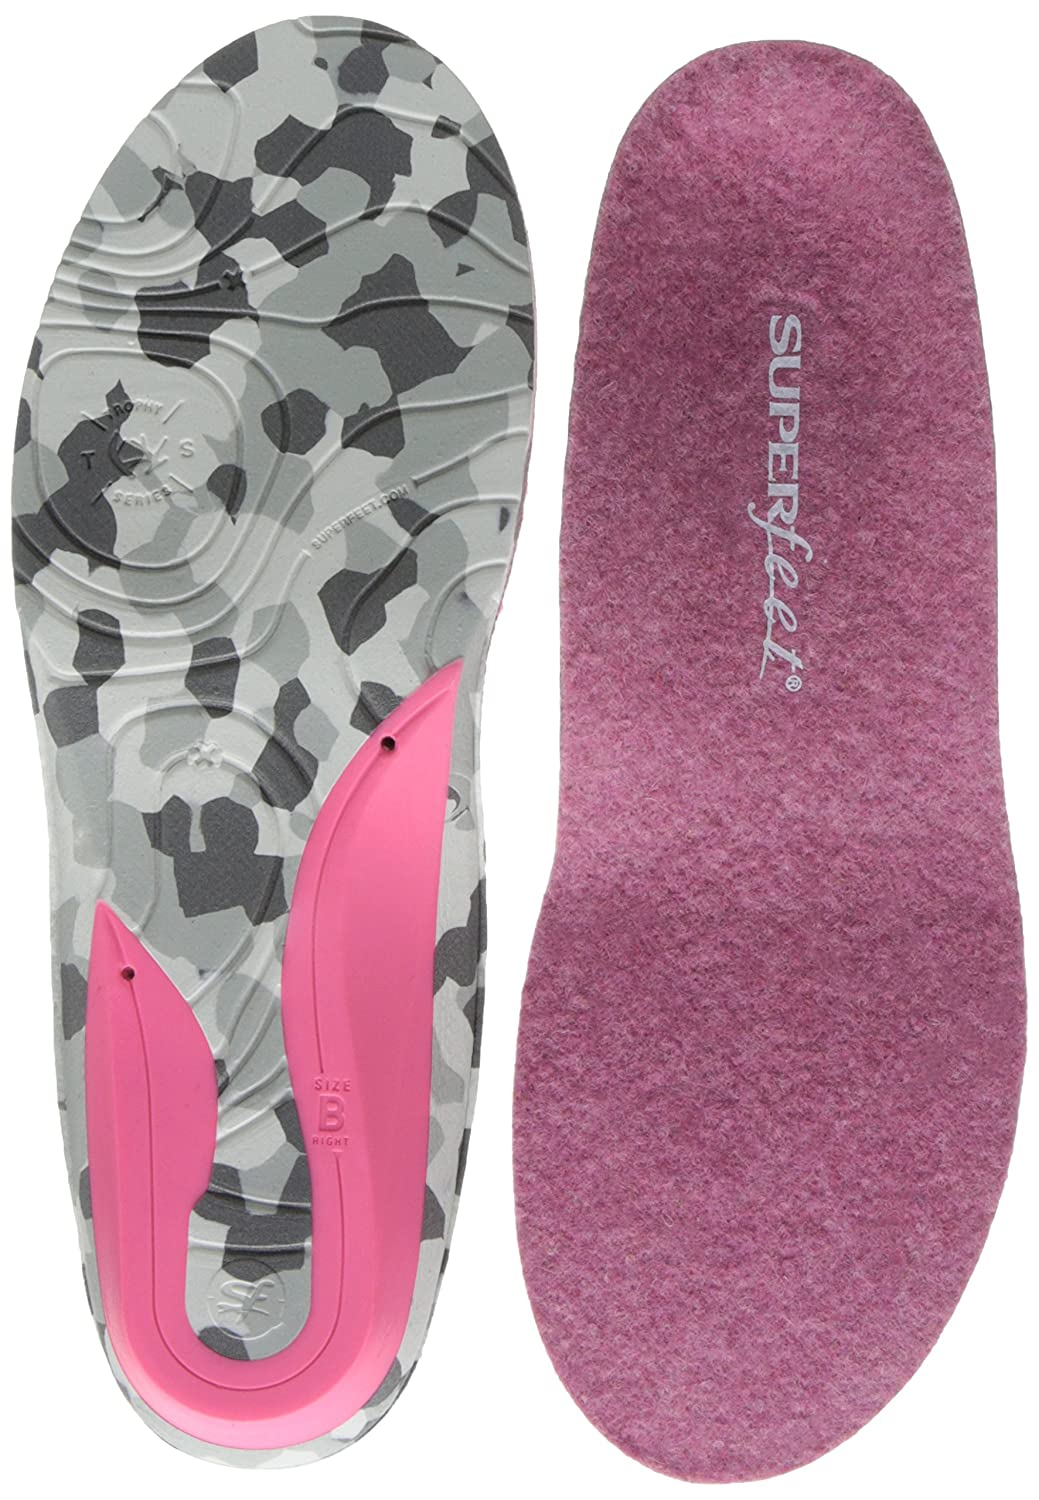 Superfeet Women's HUNT High-Mileage Warmth and Comfort Insole Inc. (Insoles) FL127907